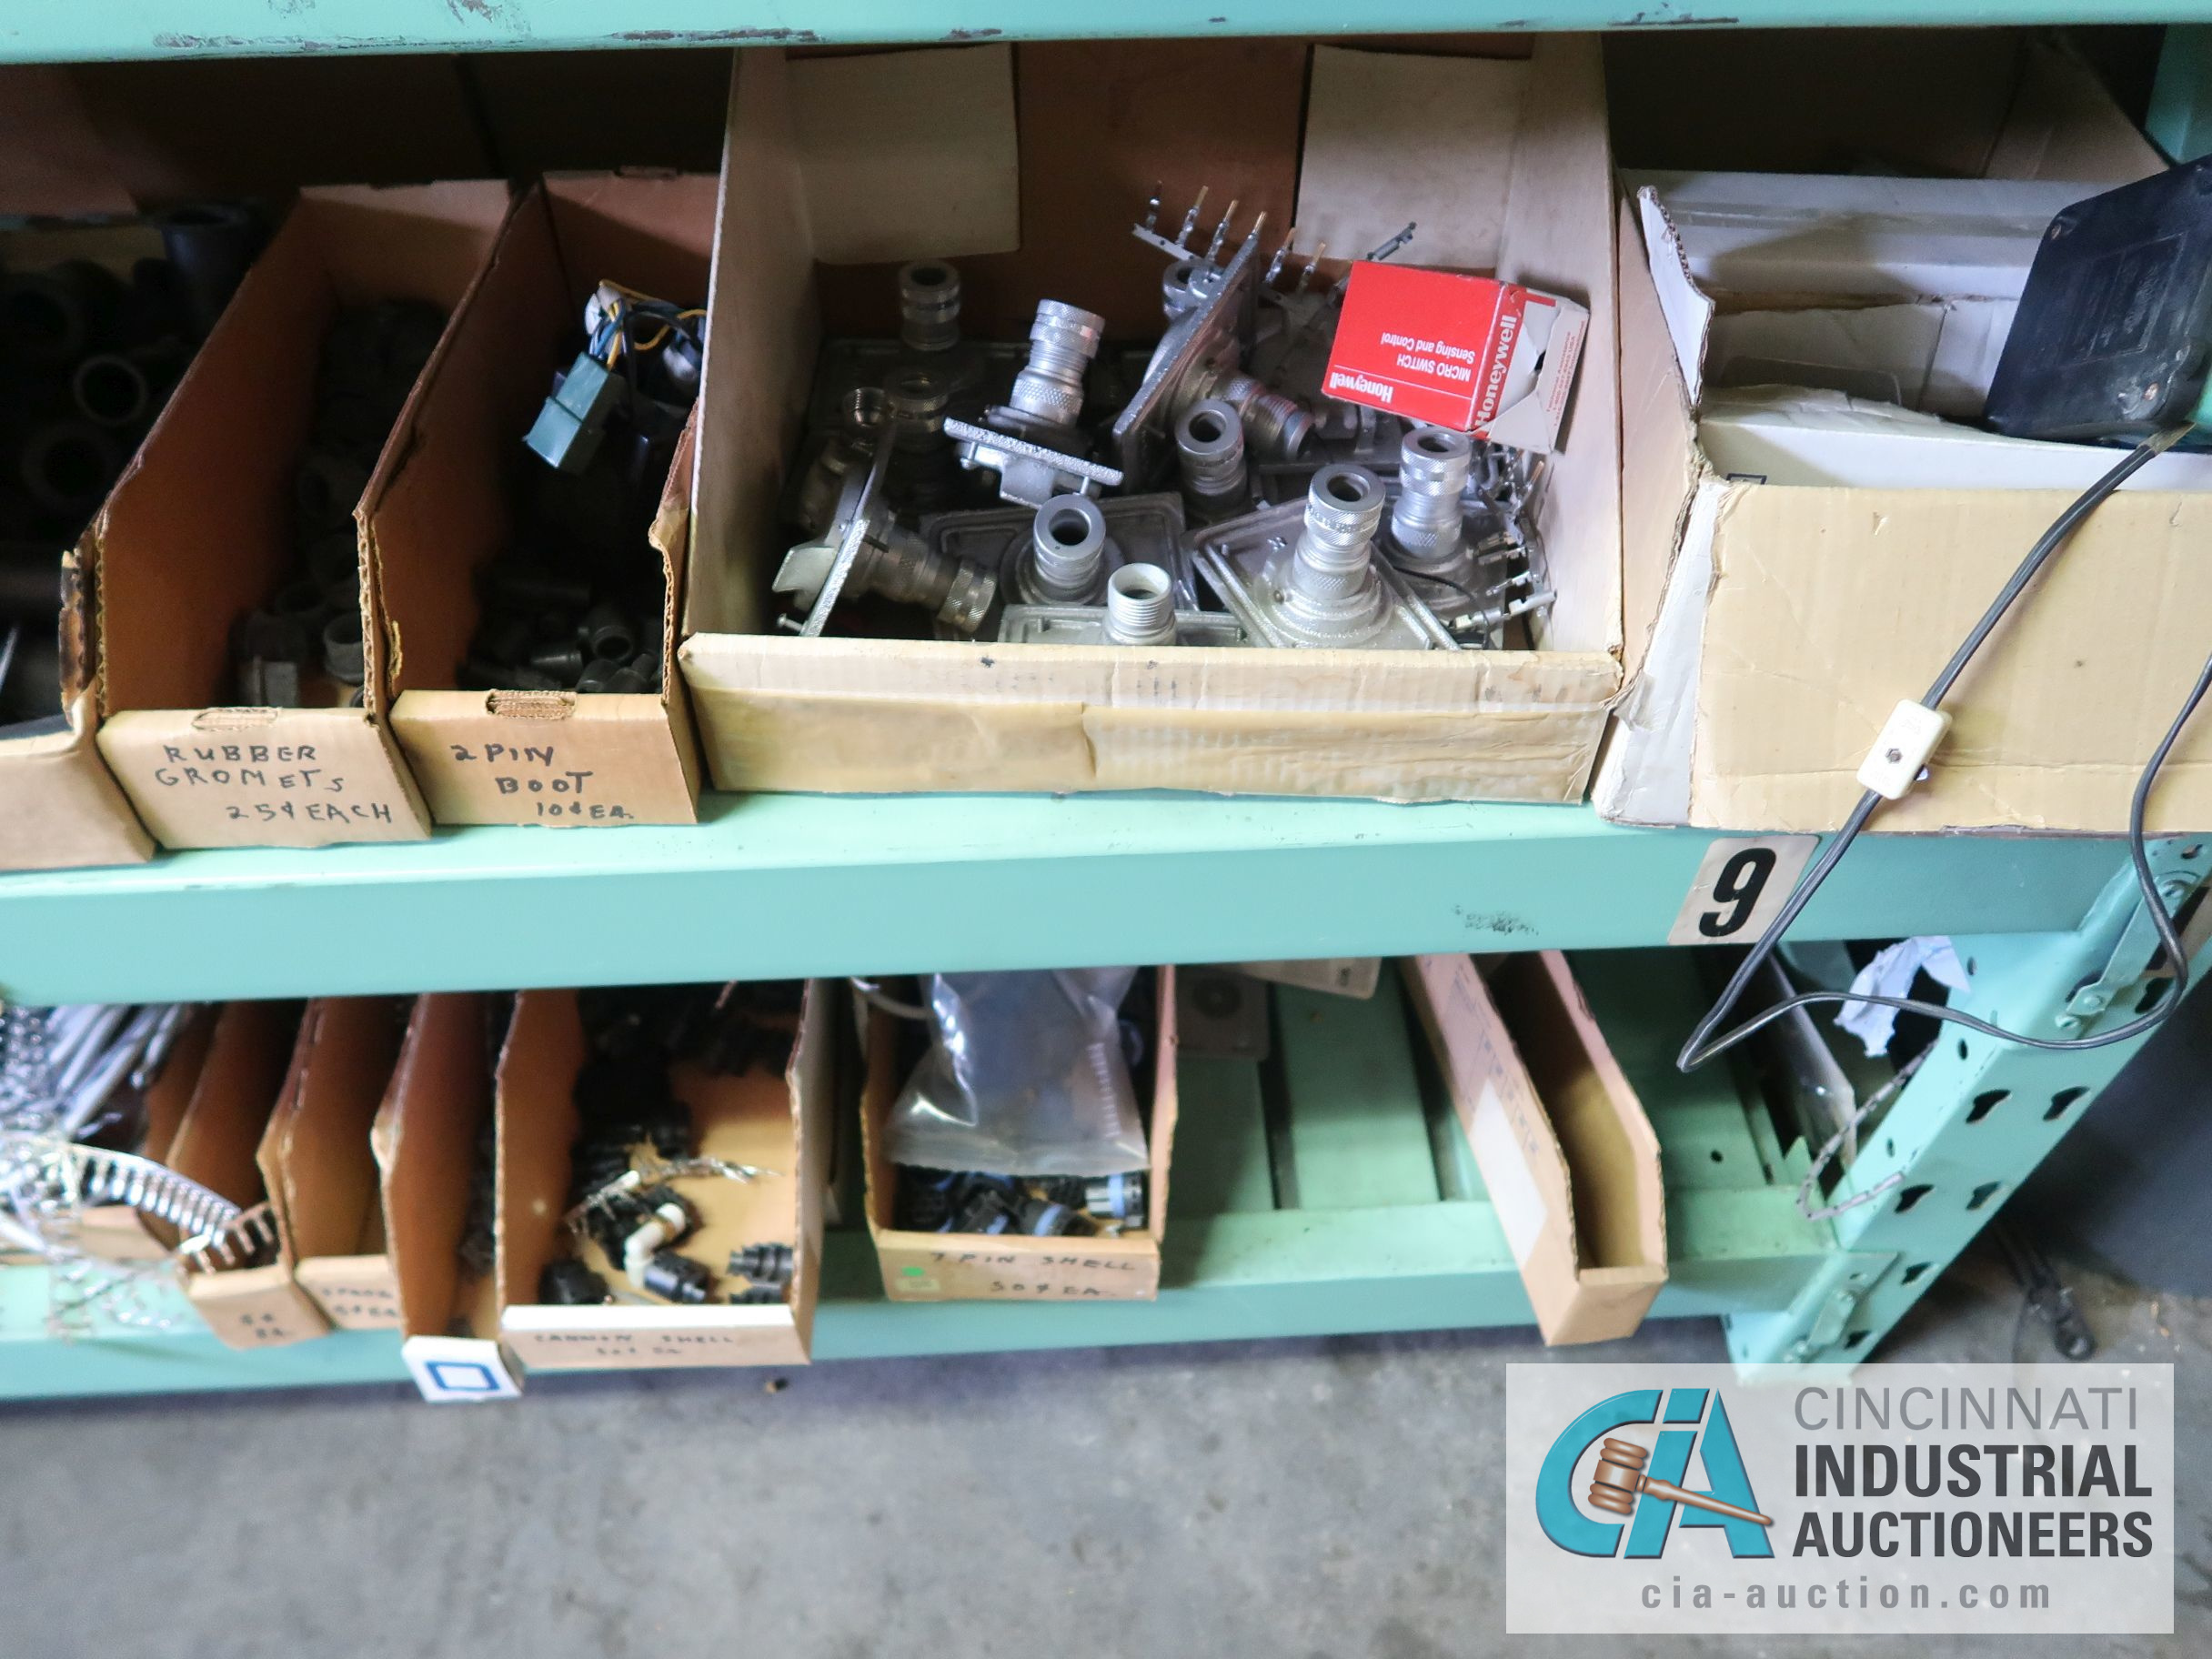 CONTENTS OF (5) RACKS INCLUDING MISCELLANEOUS AUTOMOTIVE PARTS, LIGHTS, FILTERS, ENGINE PARTS, RIMS, - Image 18 of 29